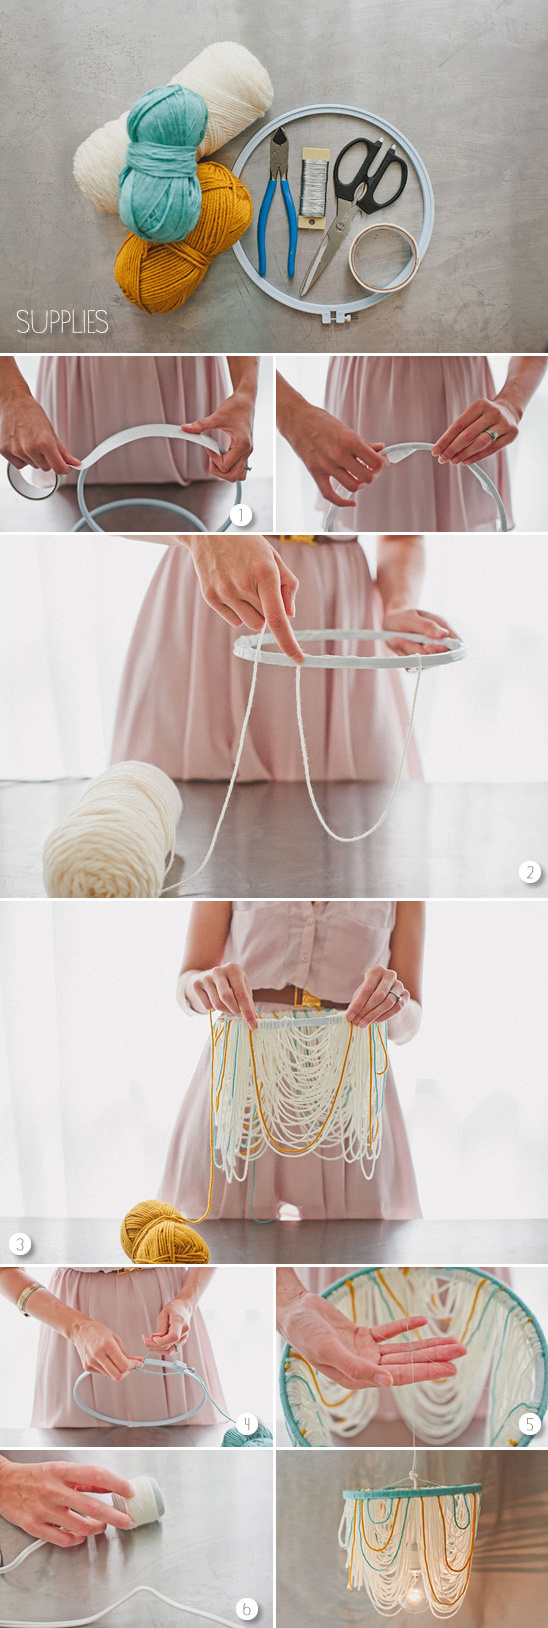 blog diy yarn chandelier. Black Bedroom Furniture Sets. Home Design Ideas